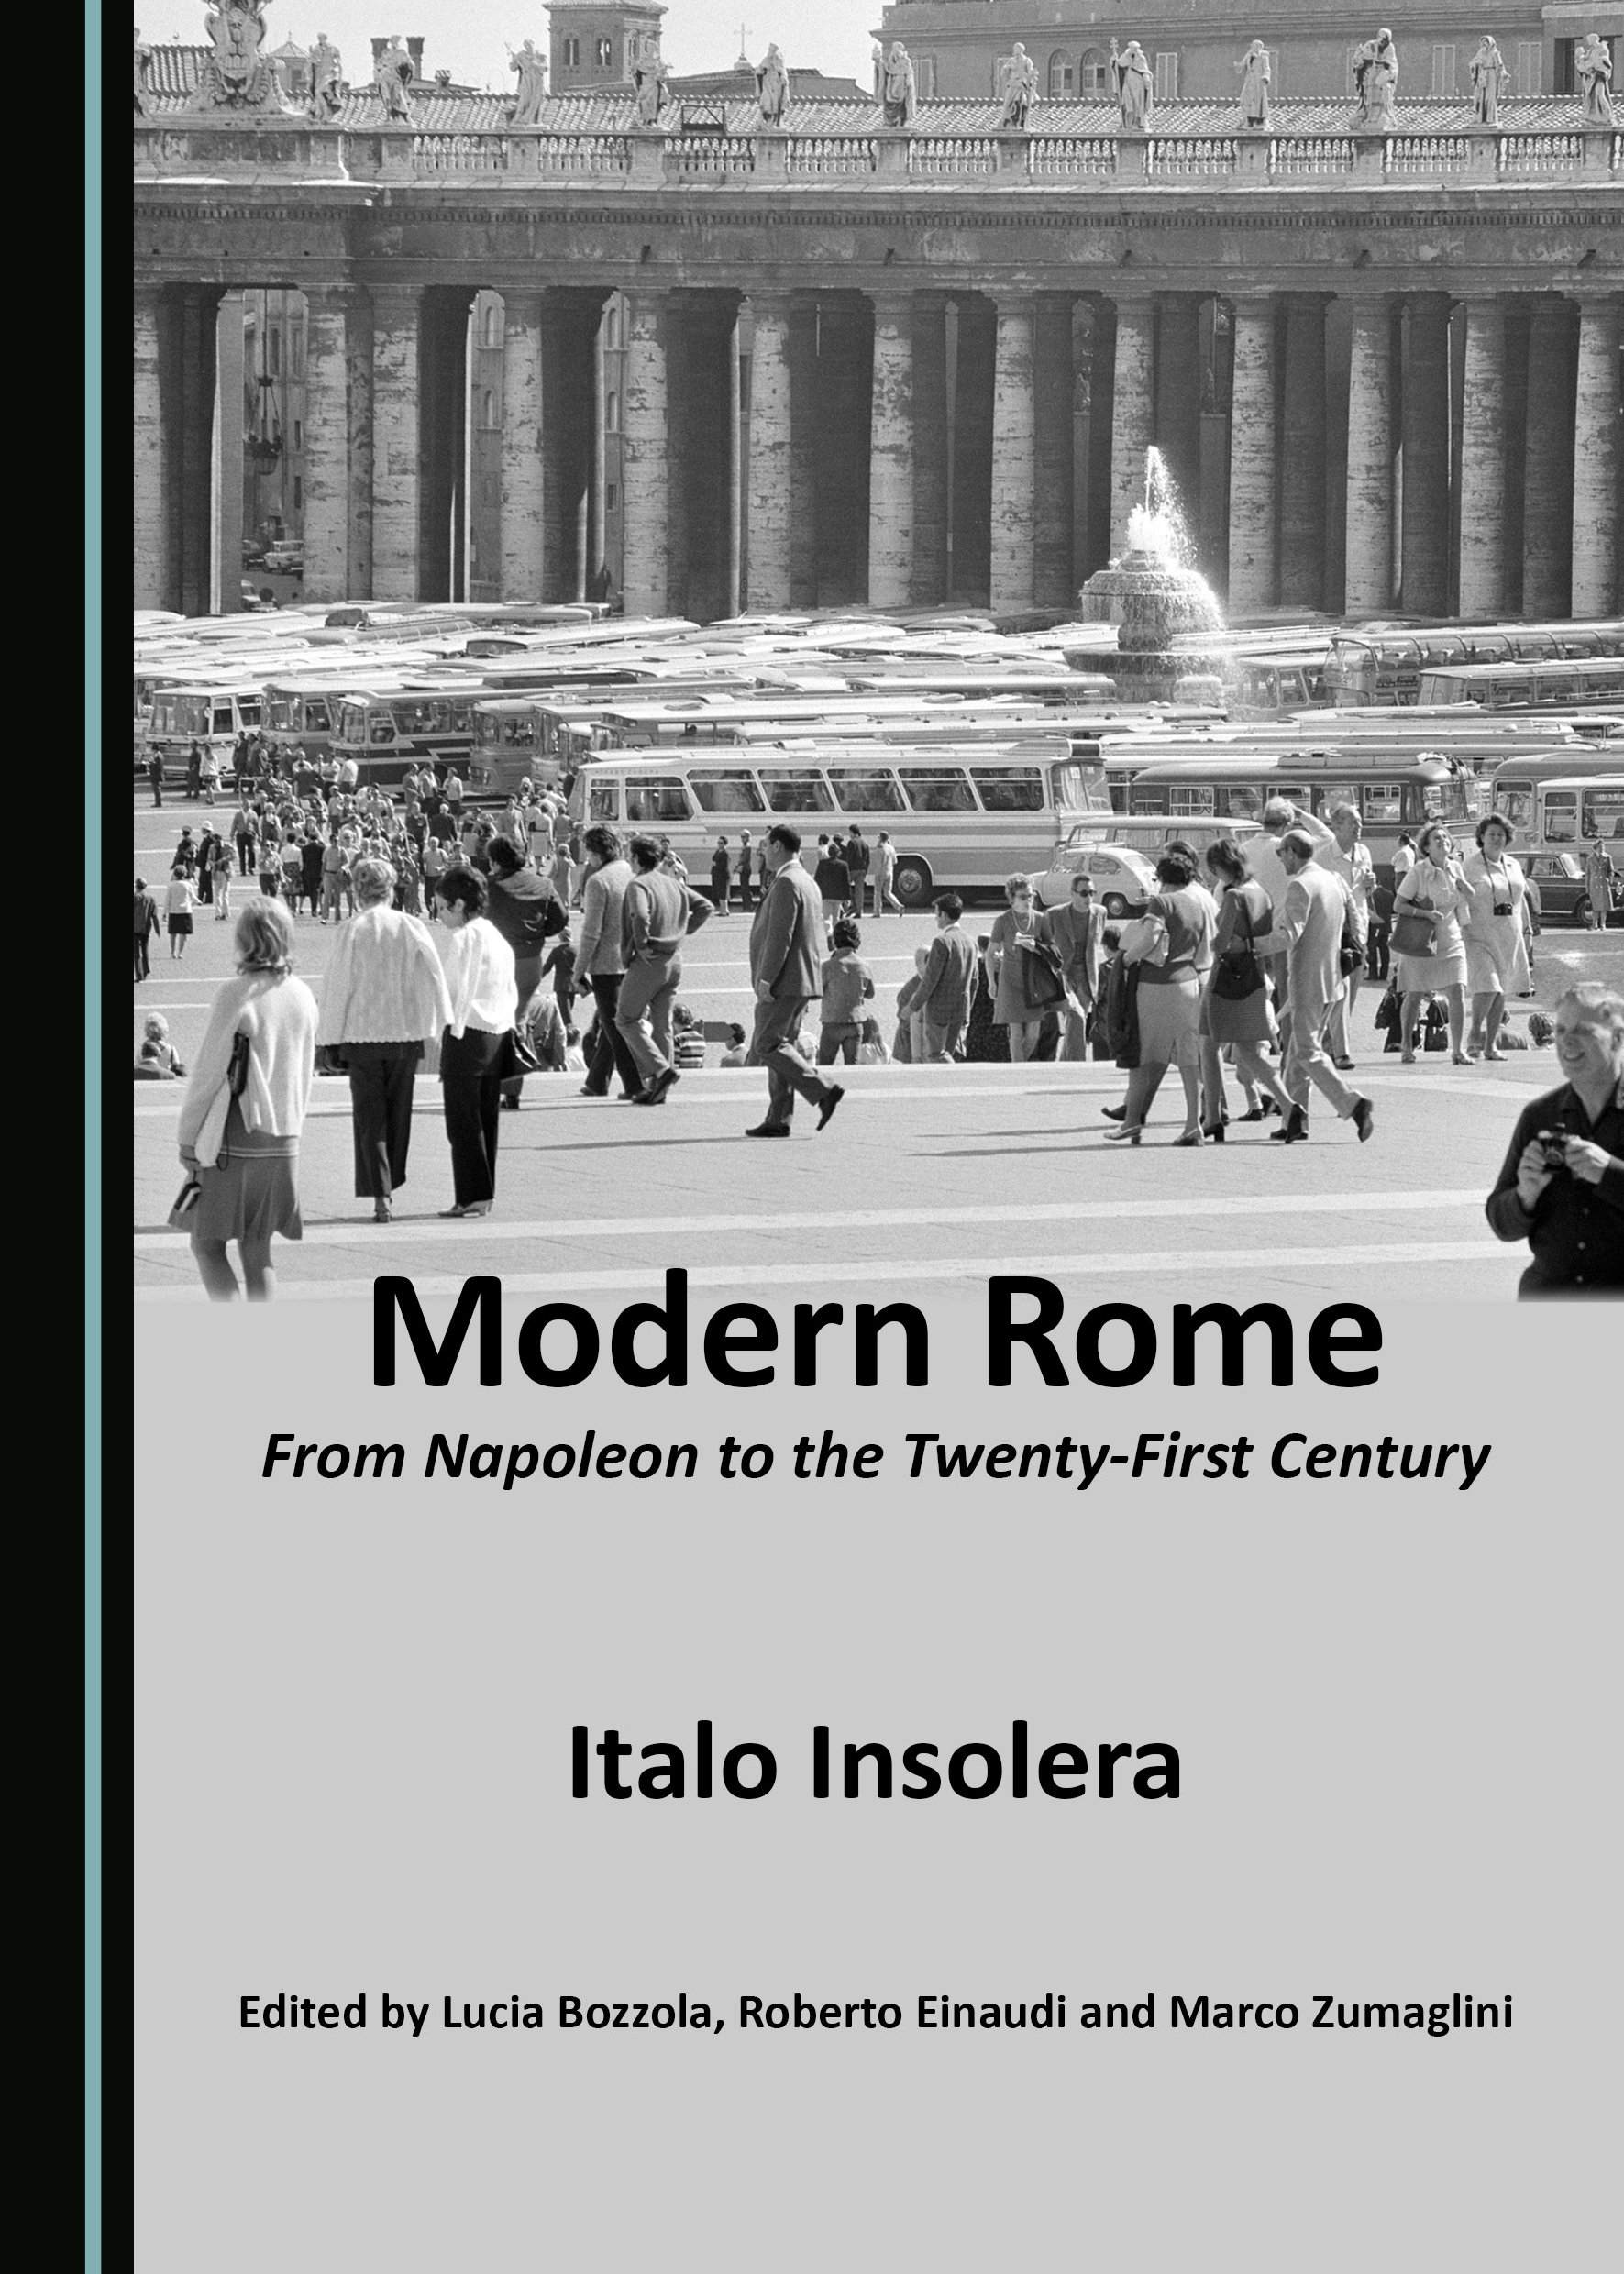 Modern Rome: From Napoleon to the Twenty-First Century